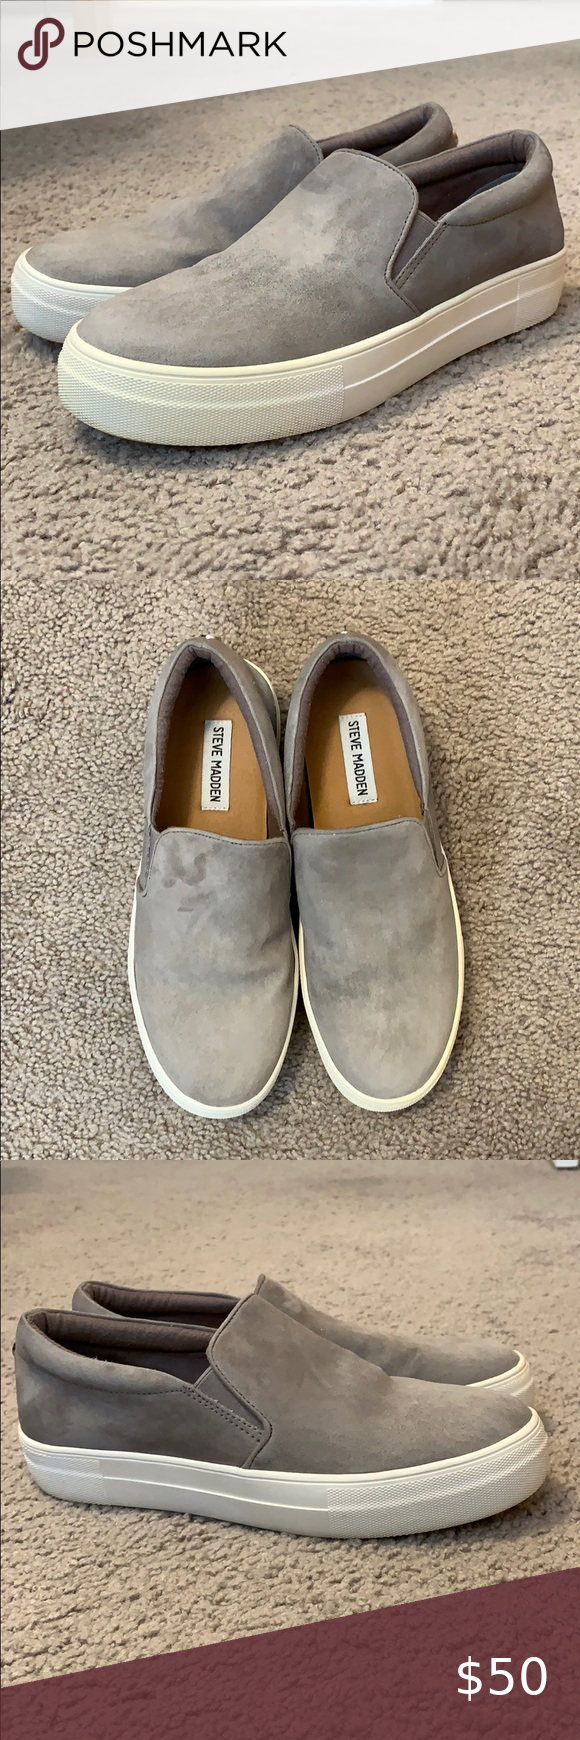 Steve Madden Suede Thick Bottom